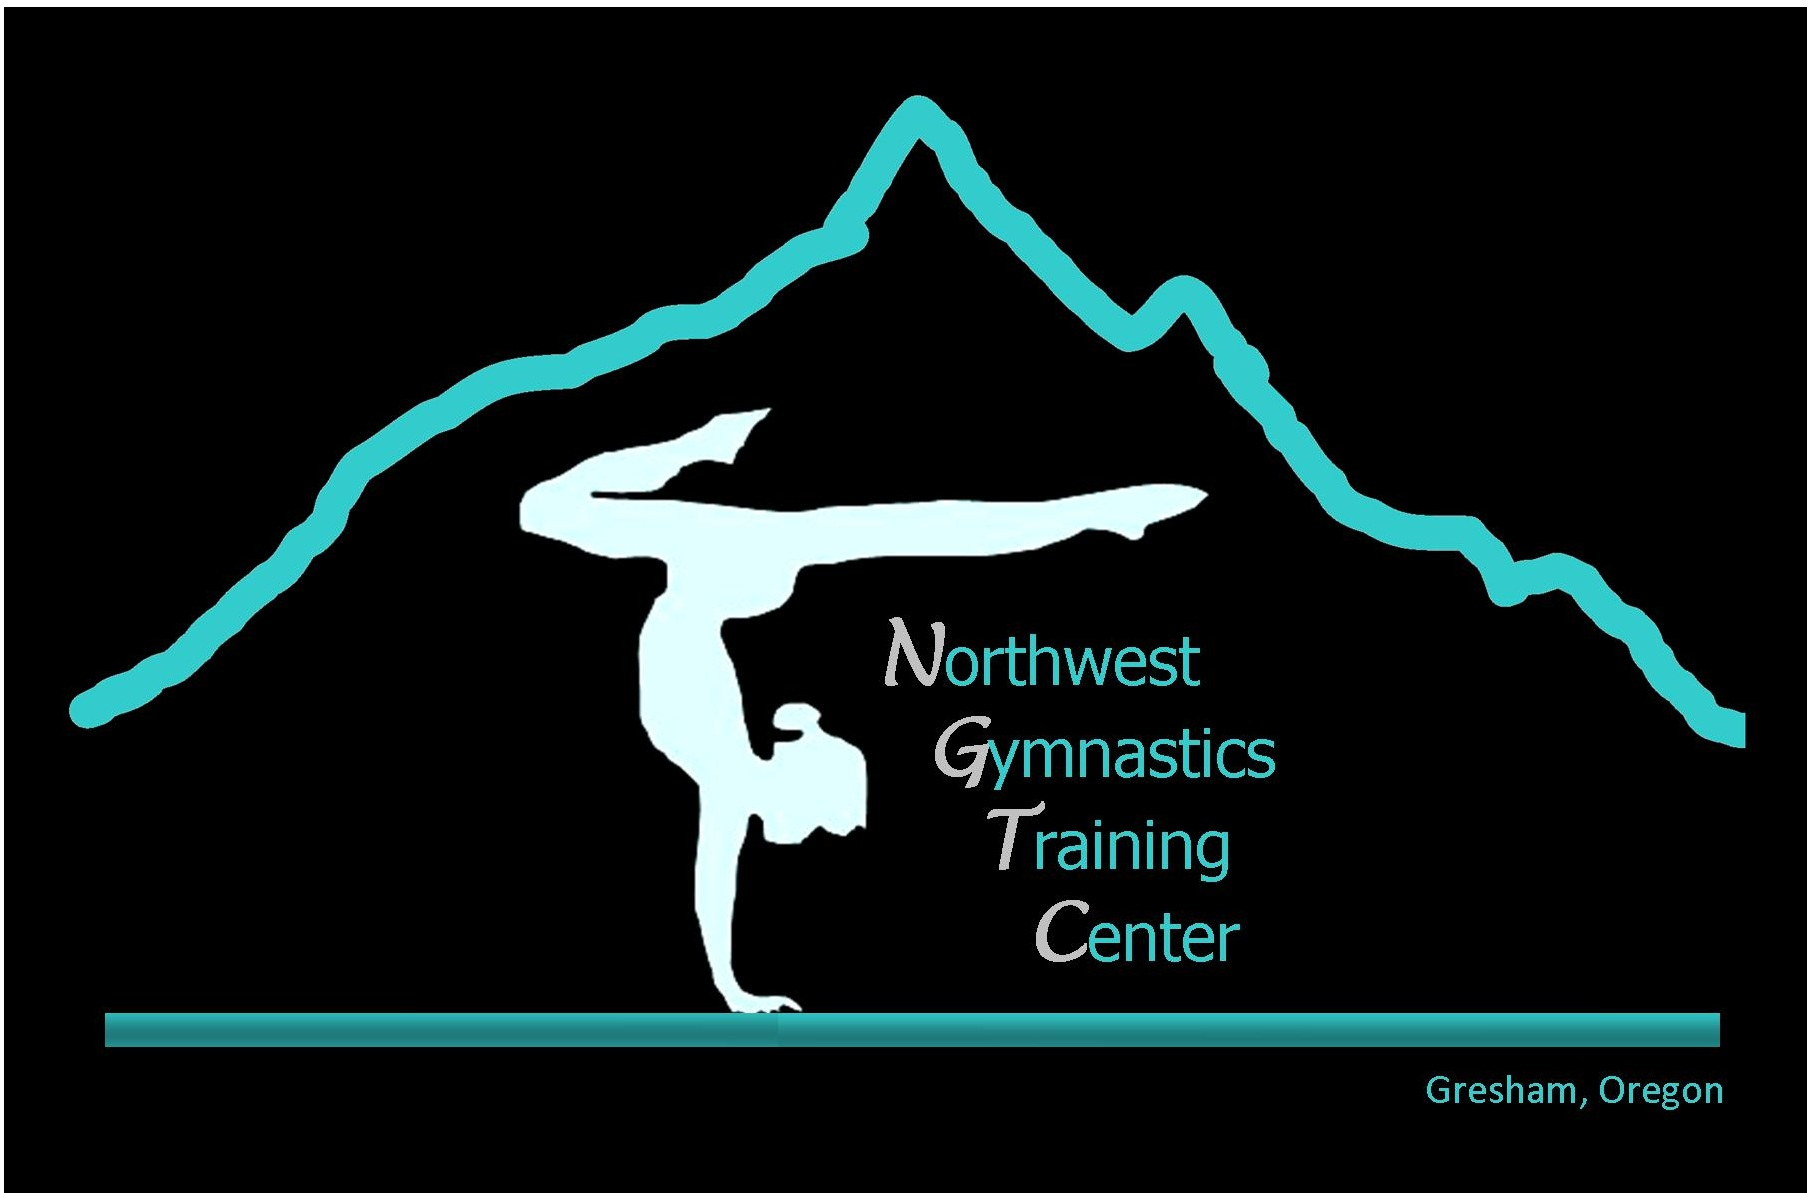 NGTC Logo 2011 Near Downtown Gresham!